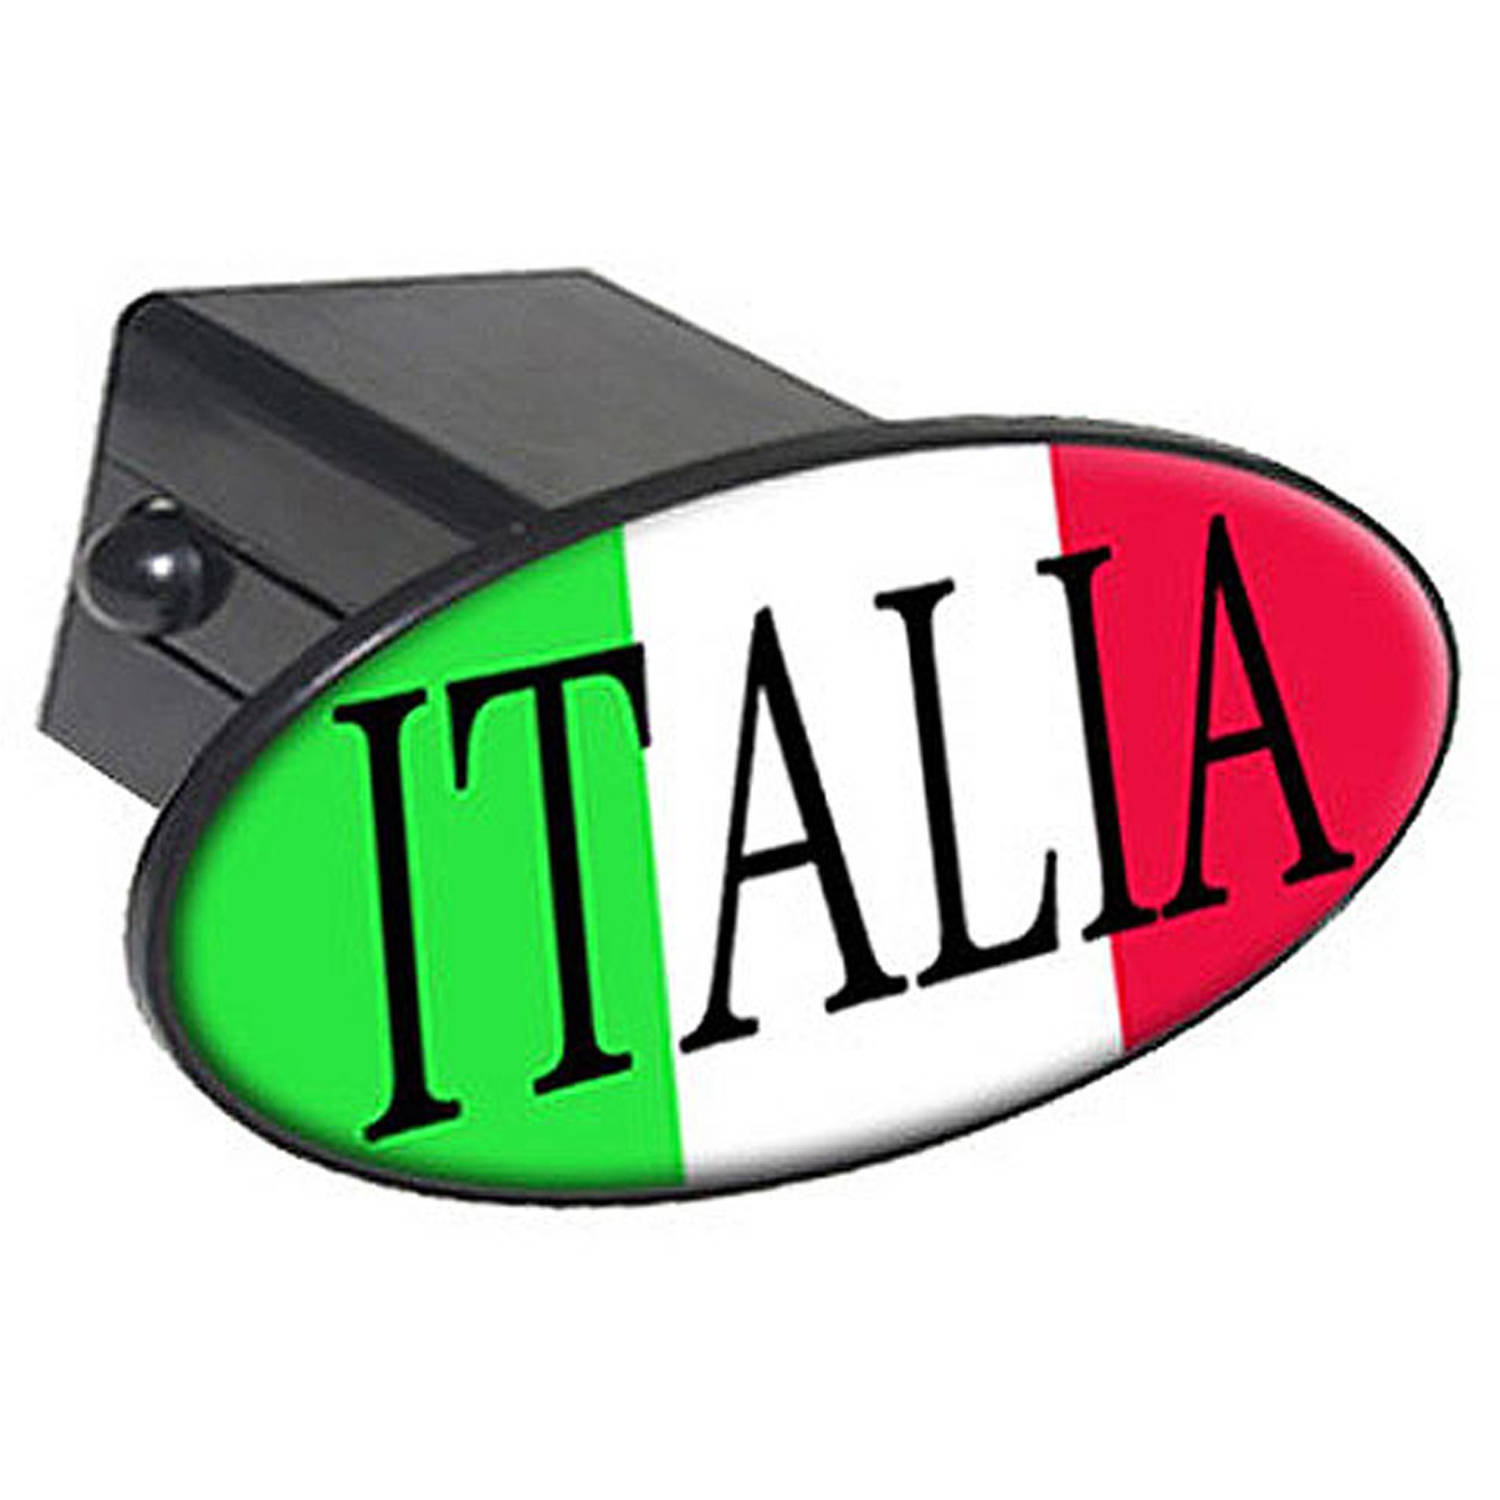 "Italia, Italy Flag, Country 2"" Oval Tow Trailer Hitch Cover Plug Insert"